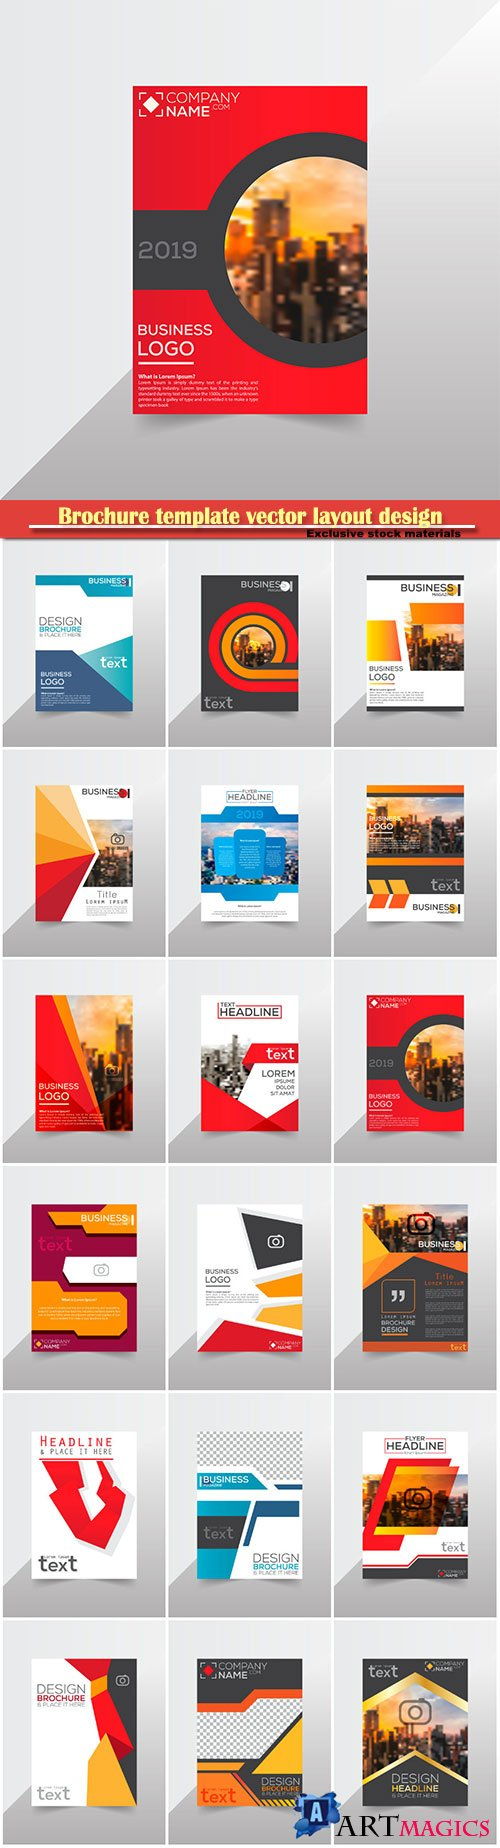 Brochure template vector layout design, corporate business annual report, magazine, flyer mockup # 217